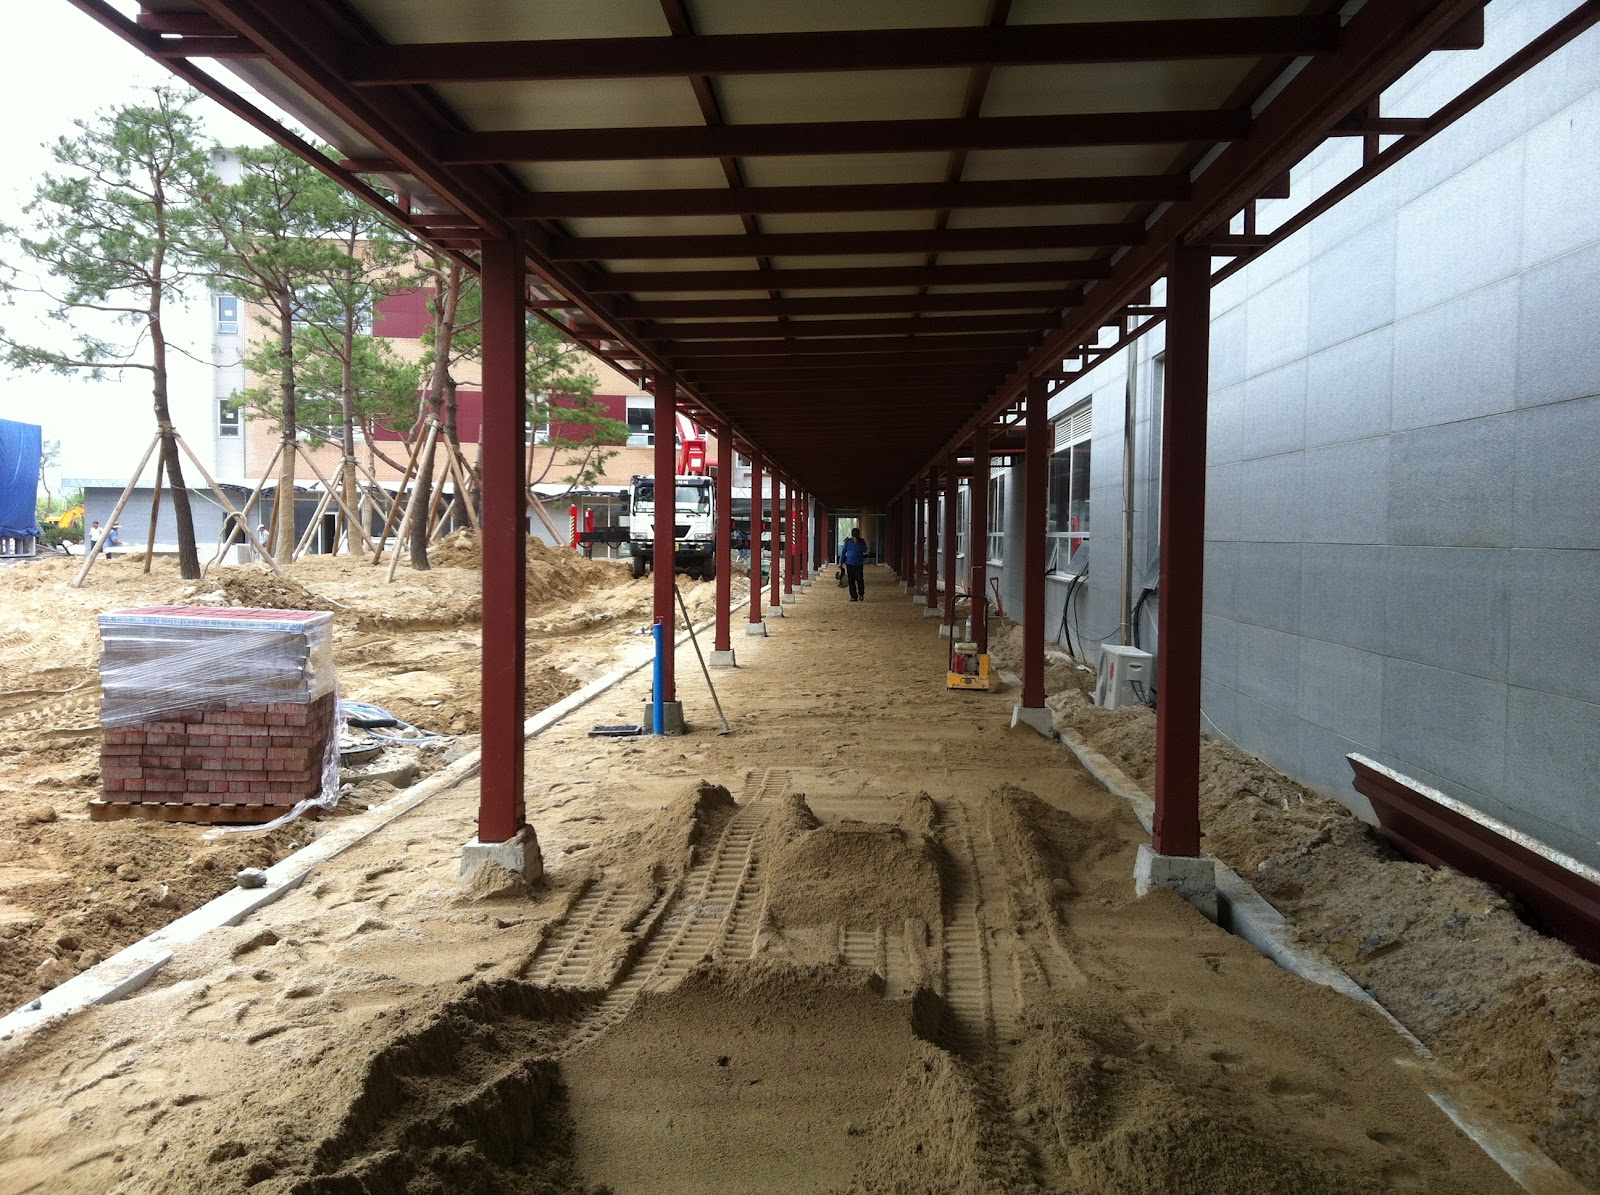 Covered Walkway Construction : We build together latest academic building and campus